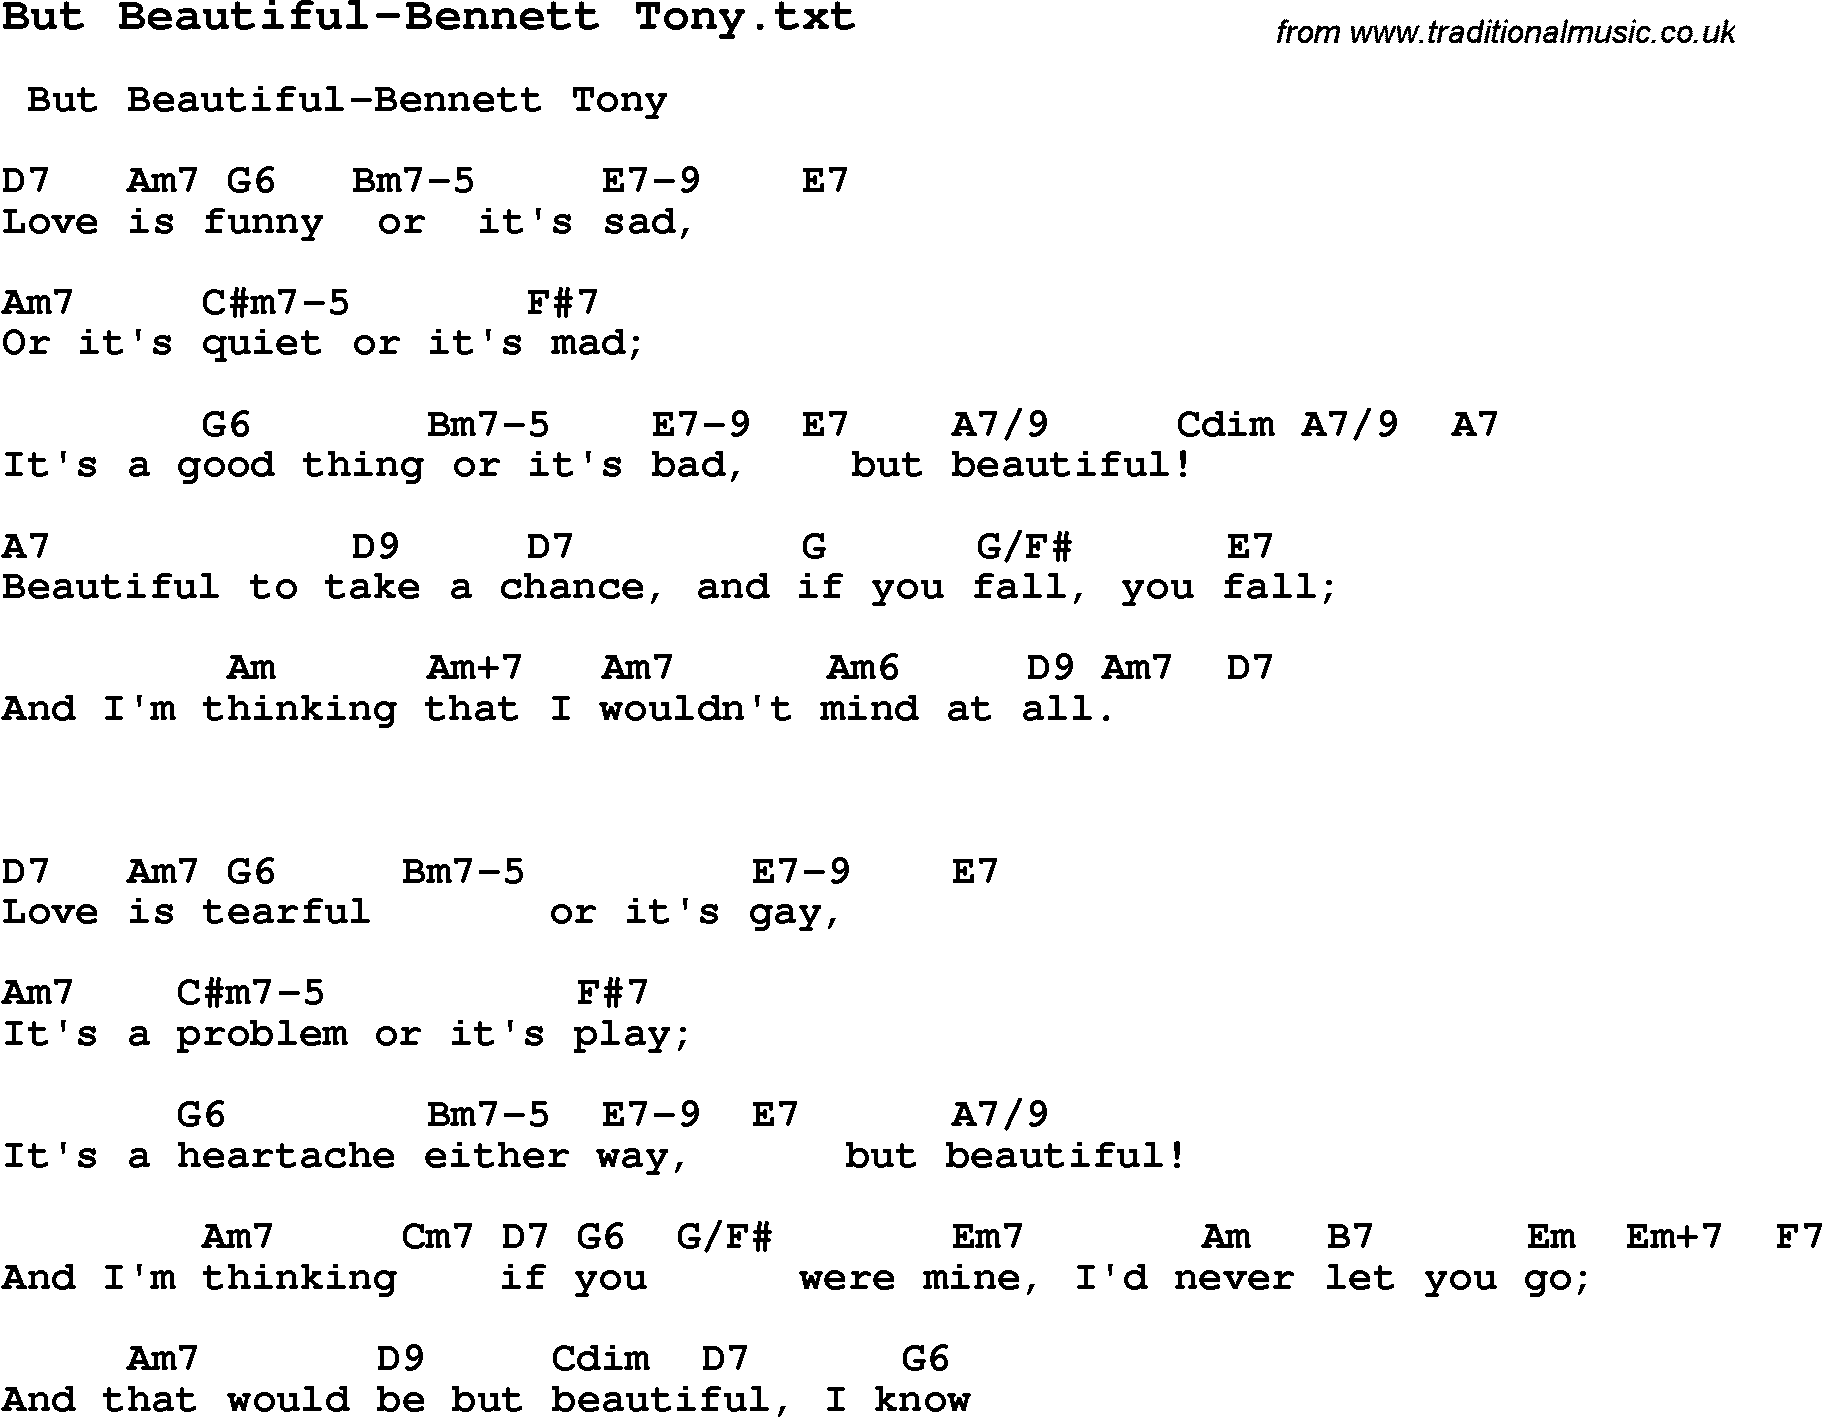 Jazz song but beautiful bennett tony with chords tabs and jazz song from top bands and vocal artists with chords tabs and lyrics but hexwebz Gallery